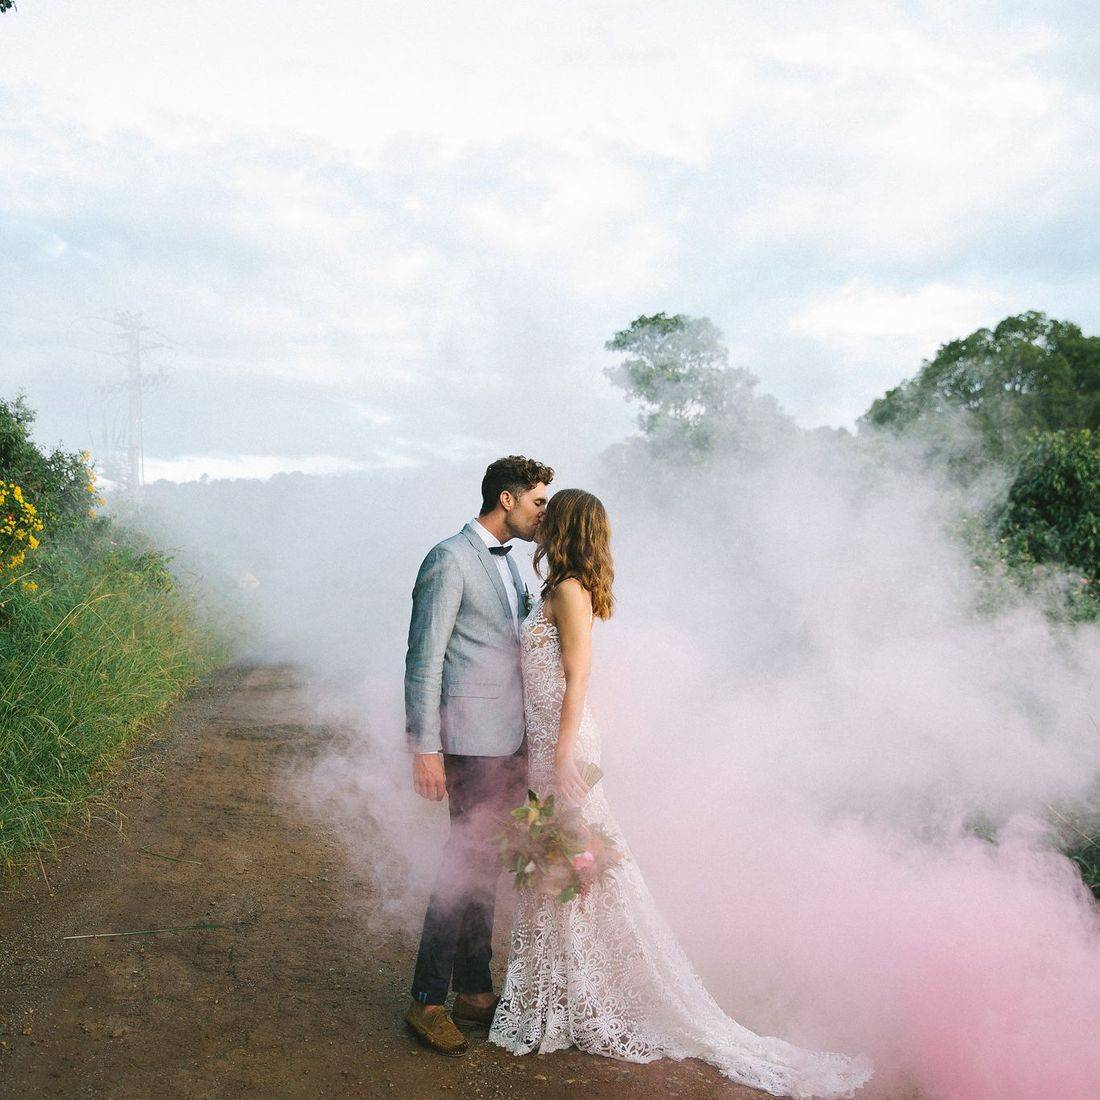 Smoke bomb - Alice and Joel's wedding